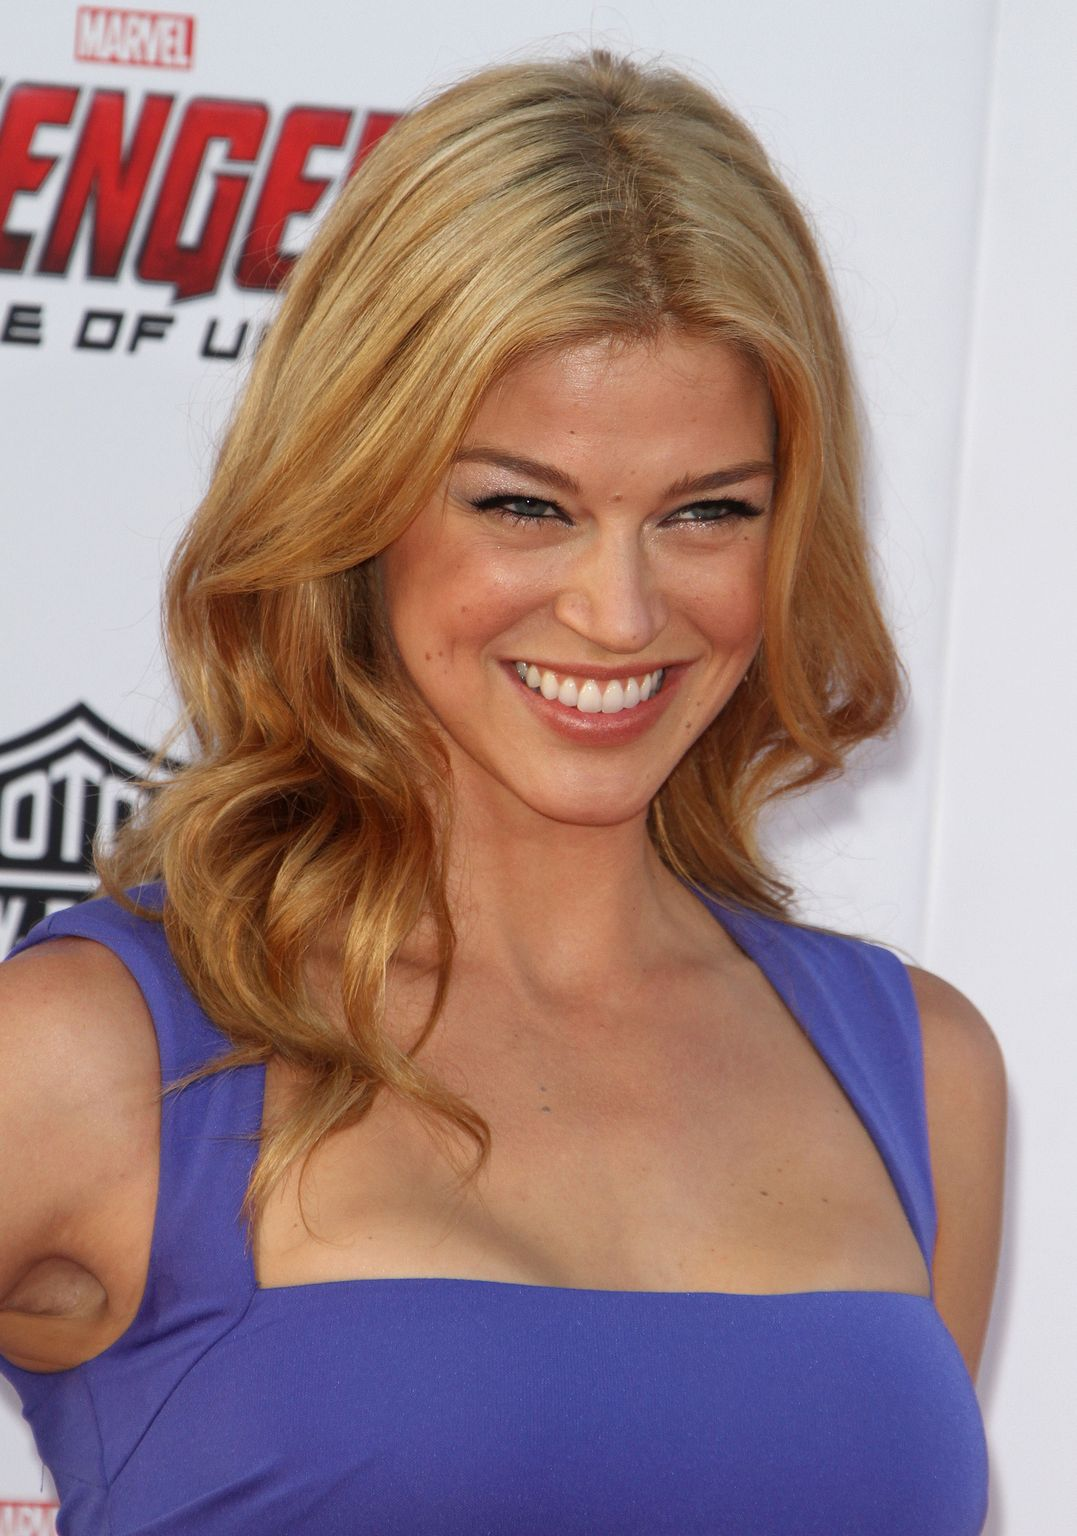 Adrianne Palicki At Avengers: Age Of Ultron Los Angeles Premiere-4